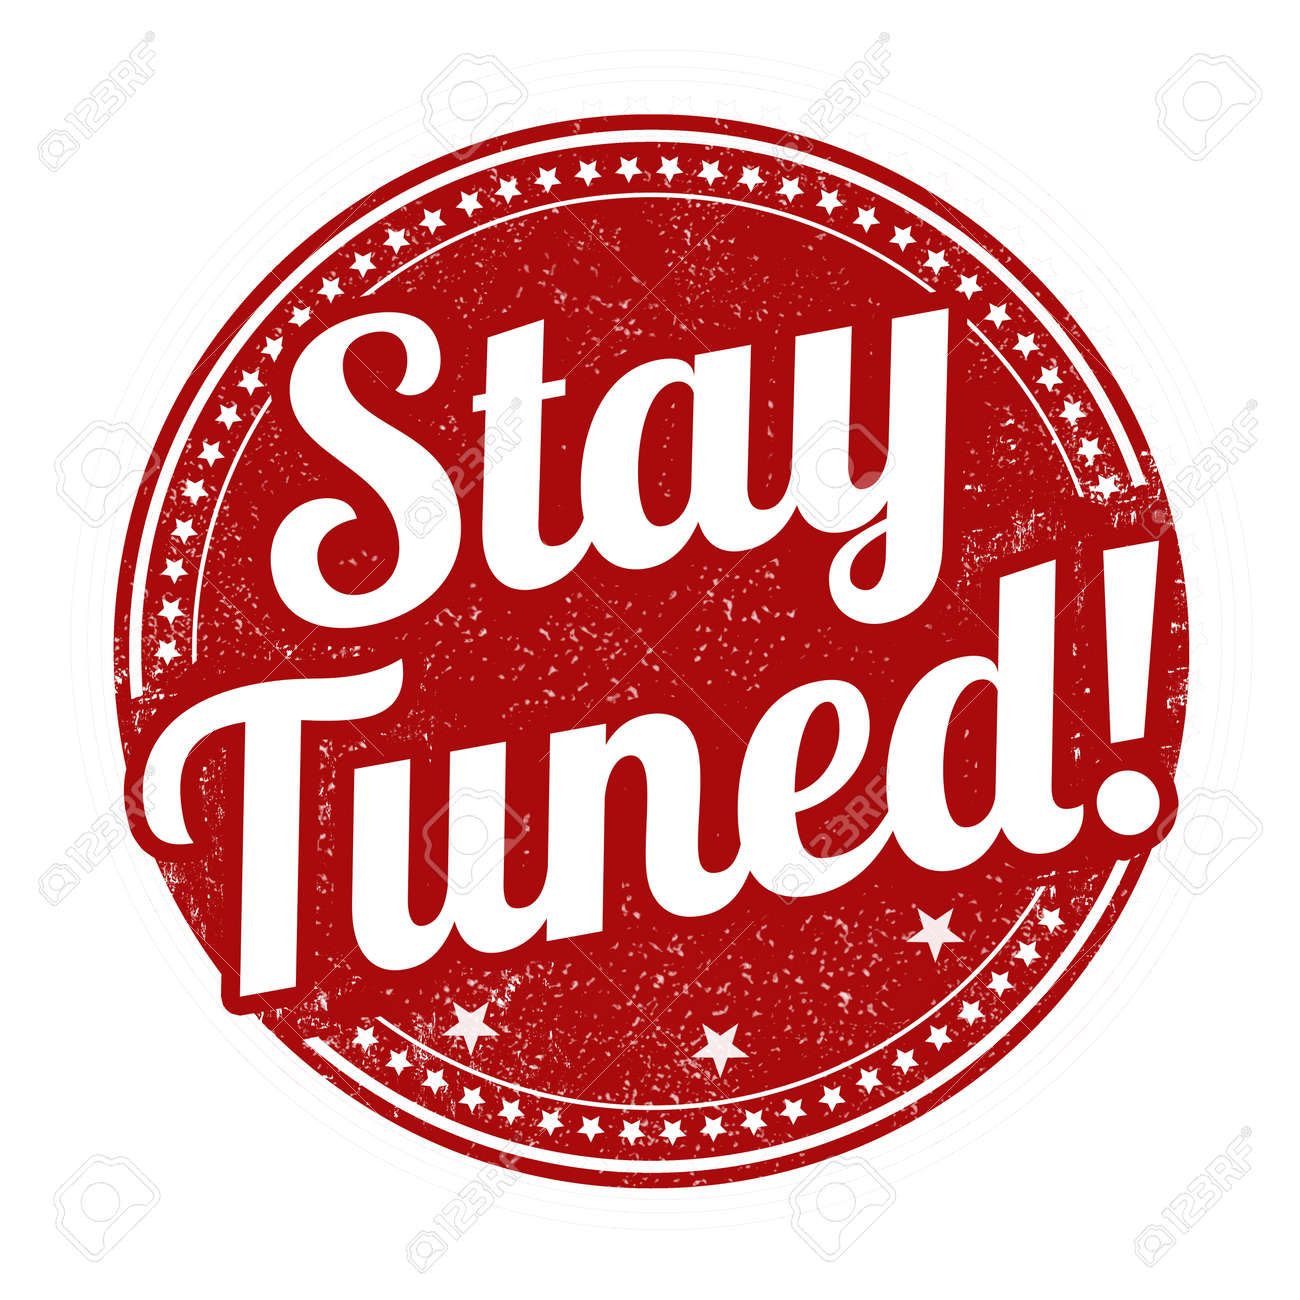 stay tuned grunge rubber stamp on white background, vector